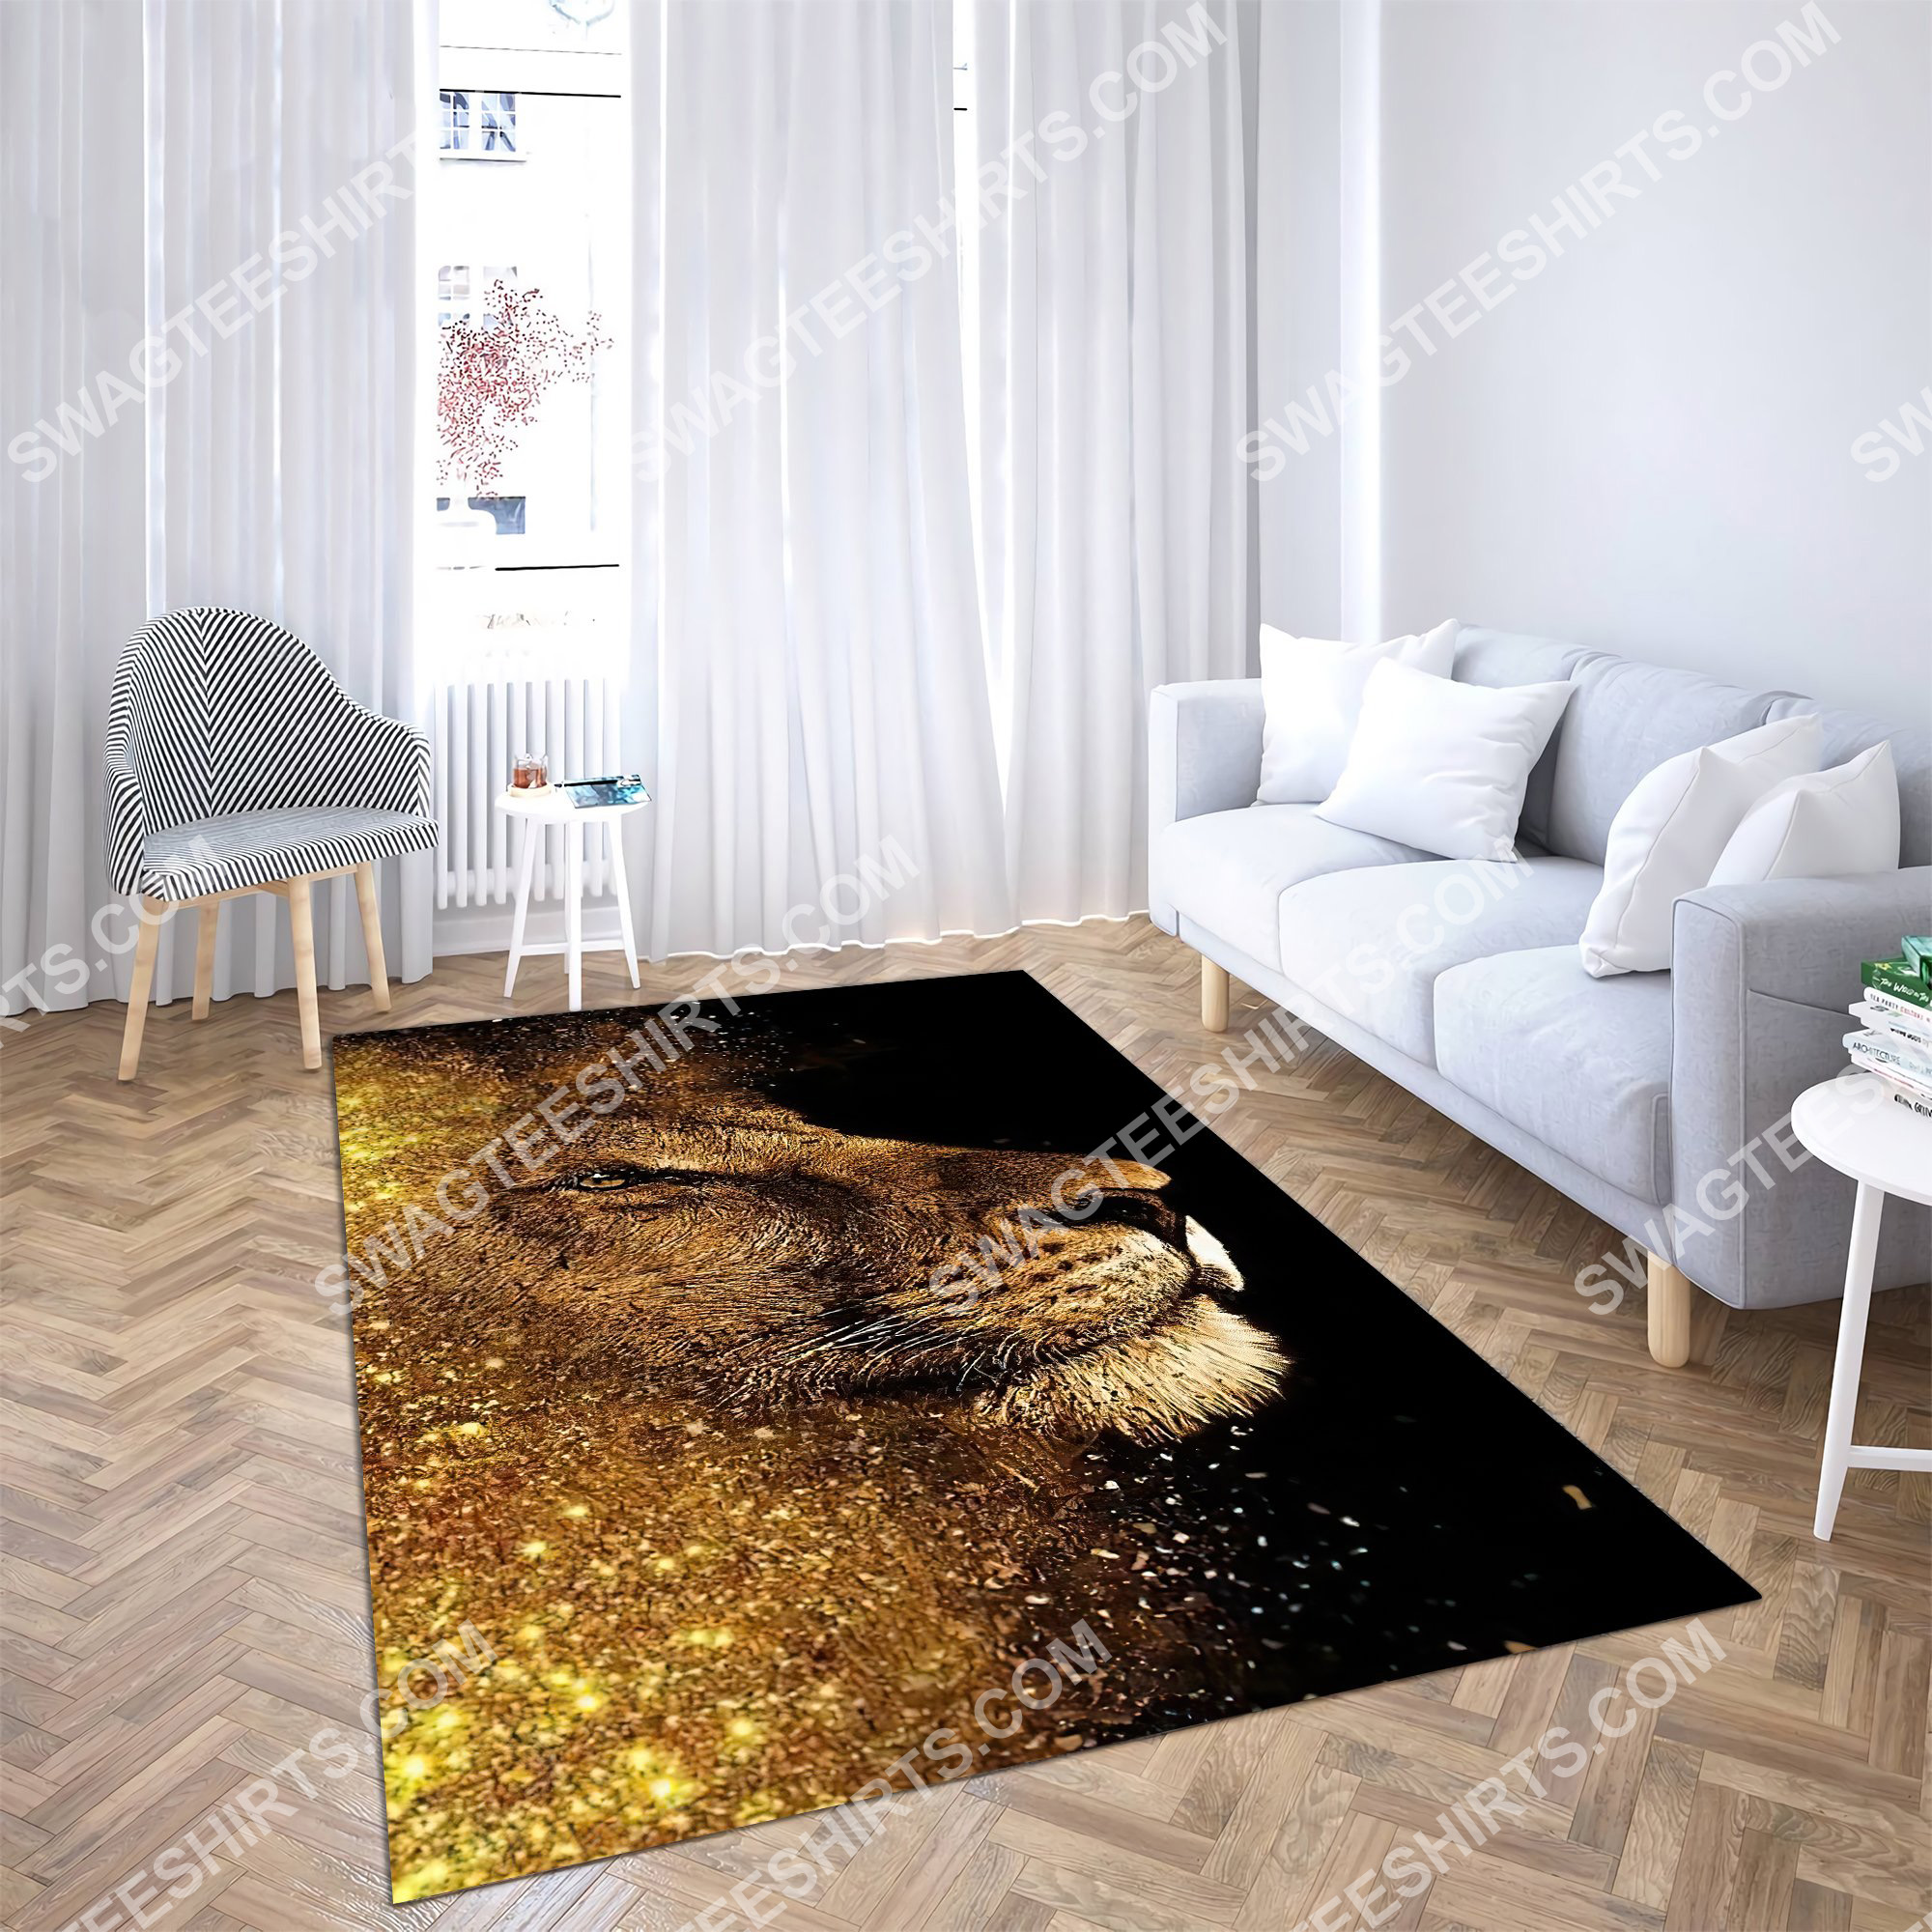 the golden lion all over printed rug 4(1)